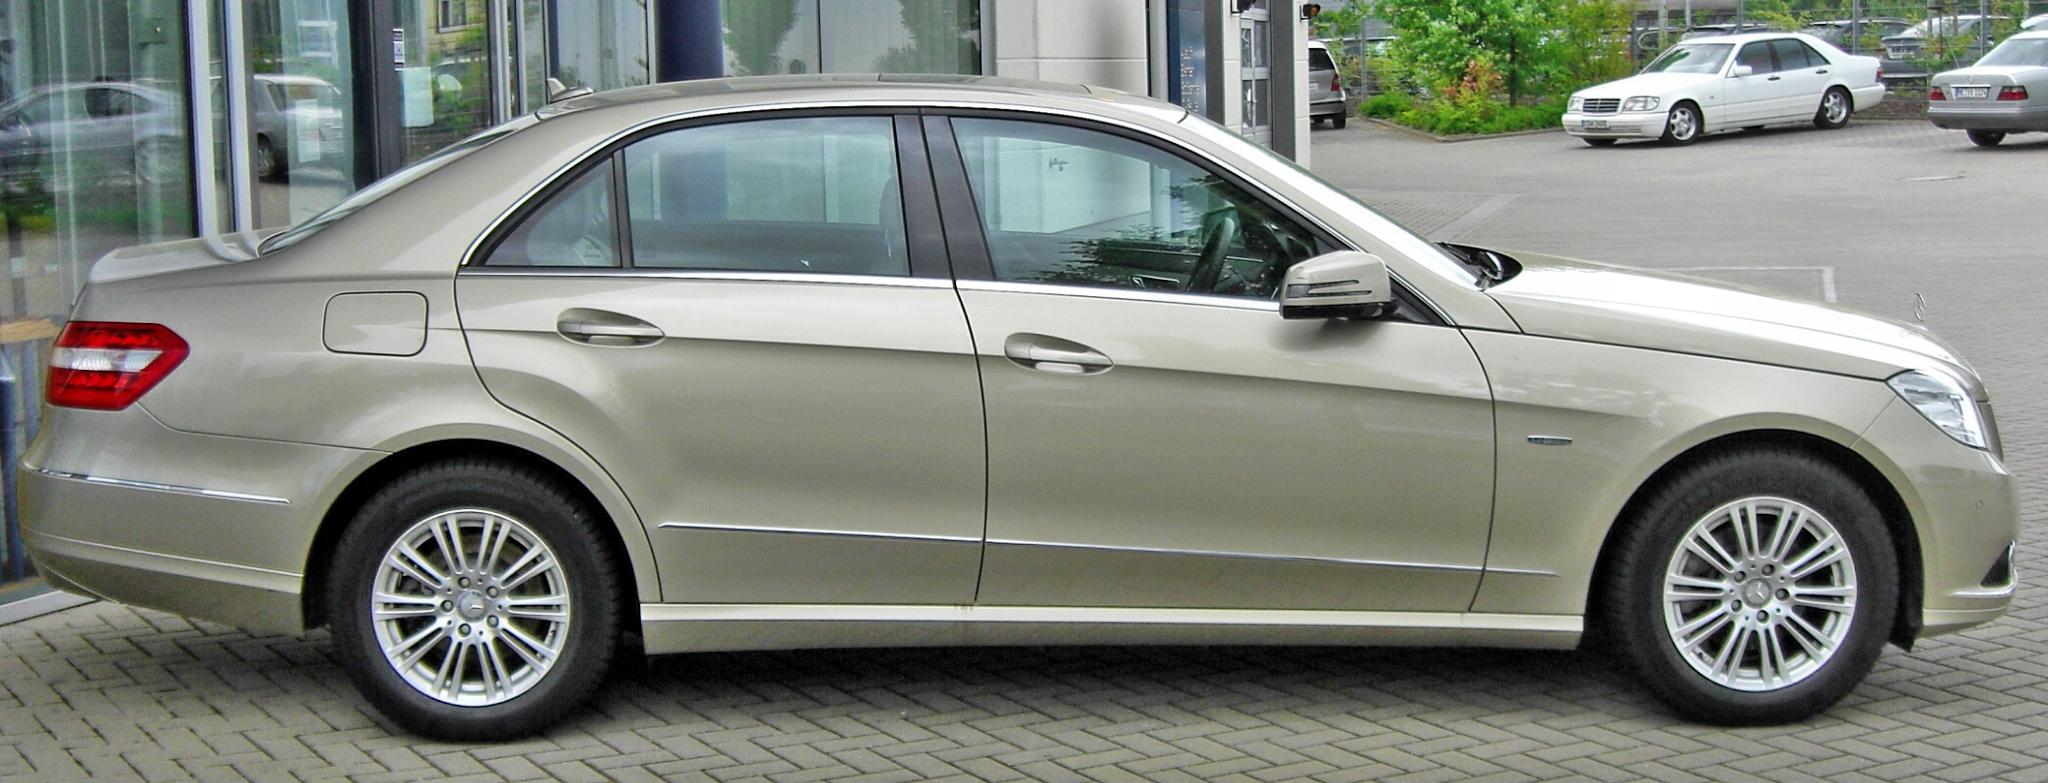 file mercedes e 220 cdi blueefficiency elegance 20090503 side jpg wikimedia commons. Black Bedroom Furniture Sets. Home Design Ideas